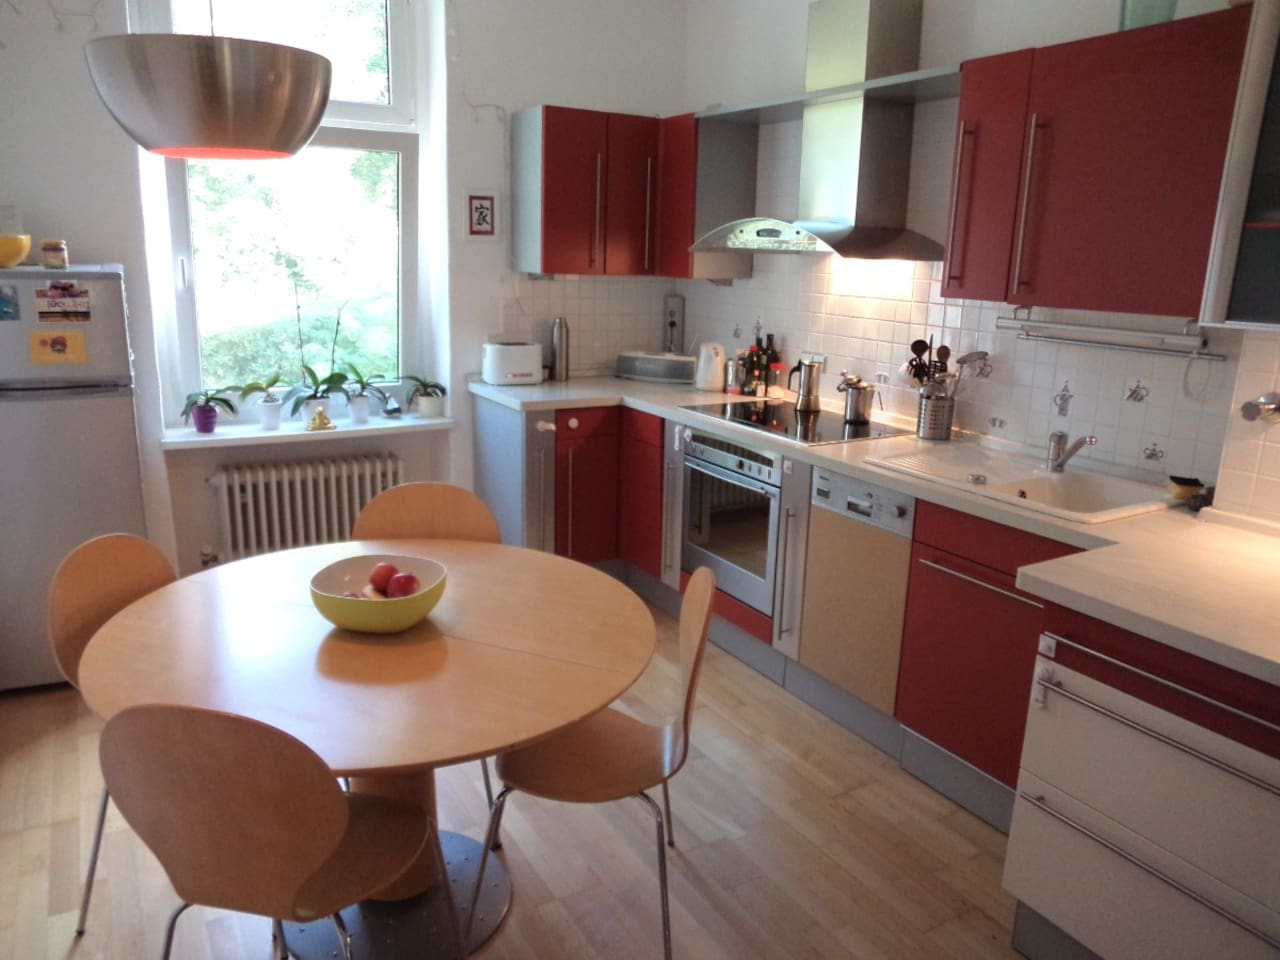 Spacious, well equipped kitchen with dishwashing machine.